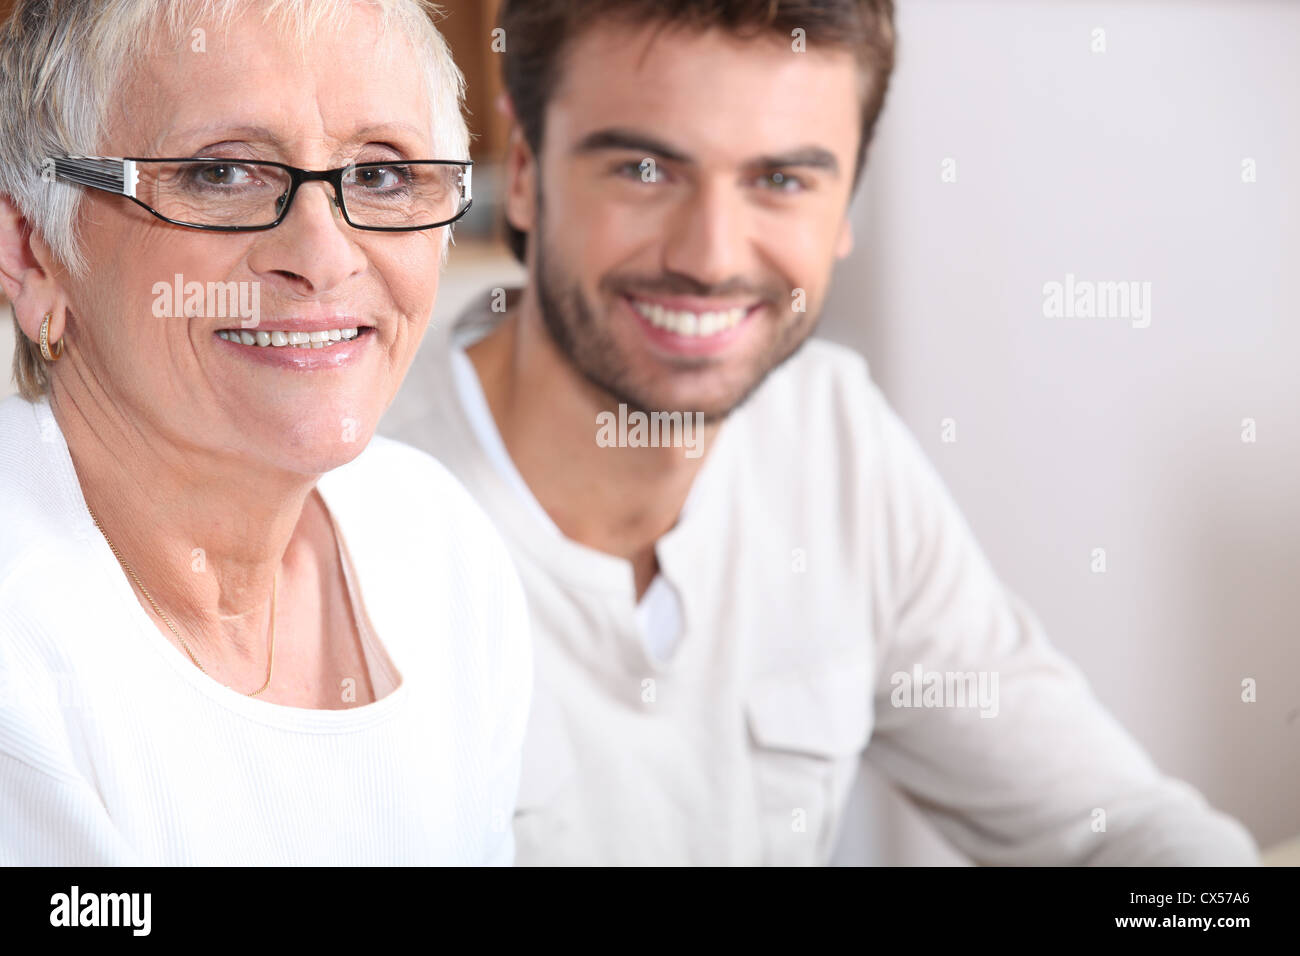 Senior woman sitting with a young man - Stock Image